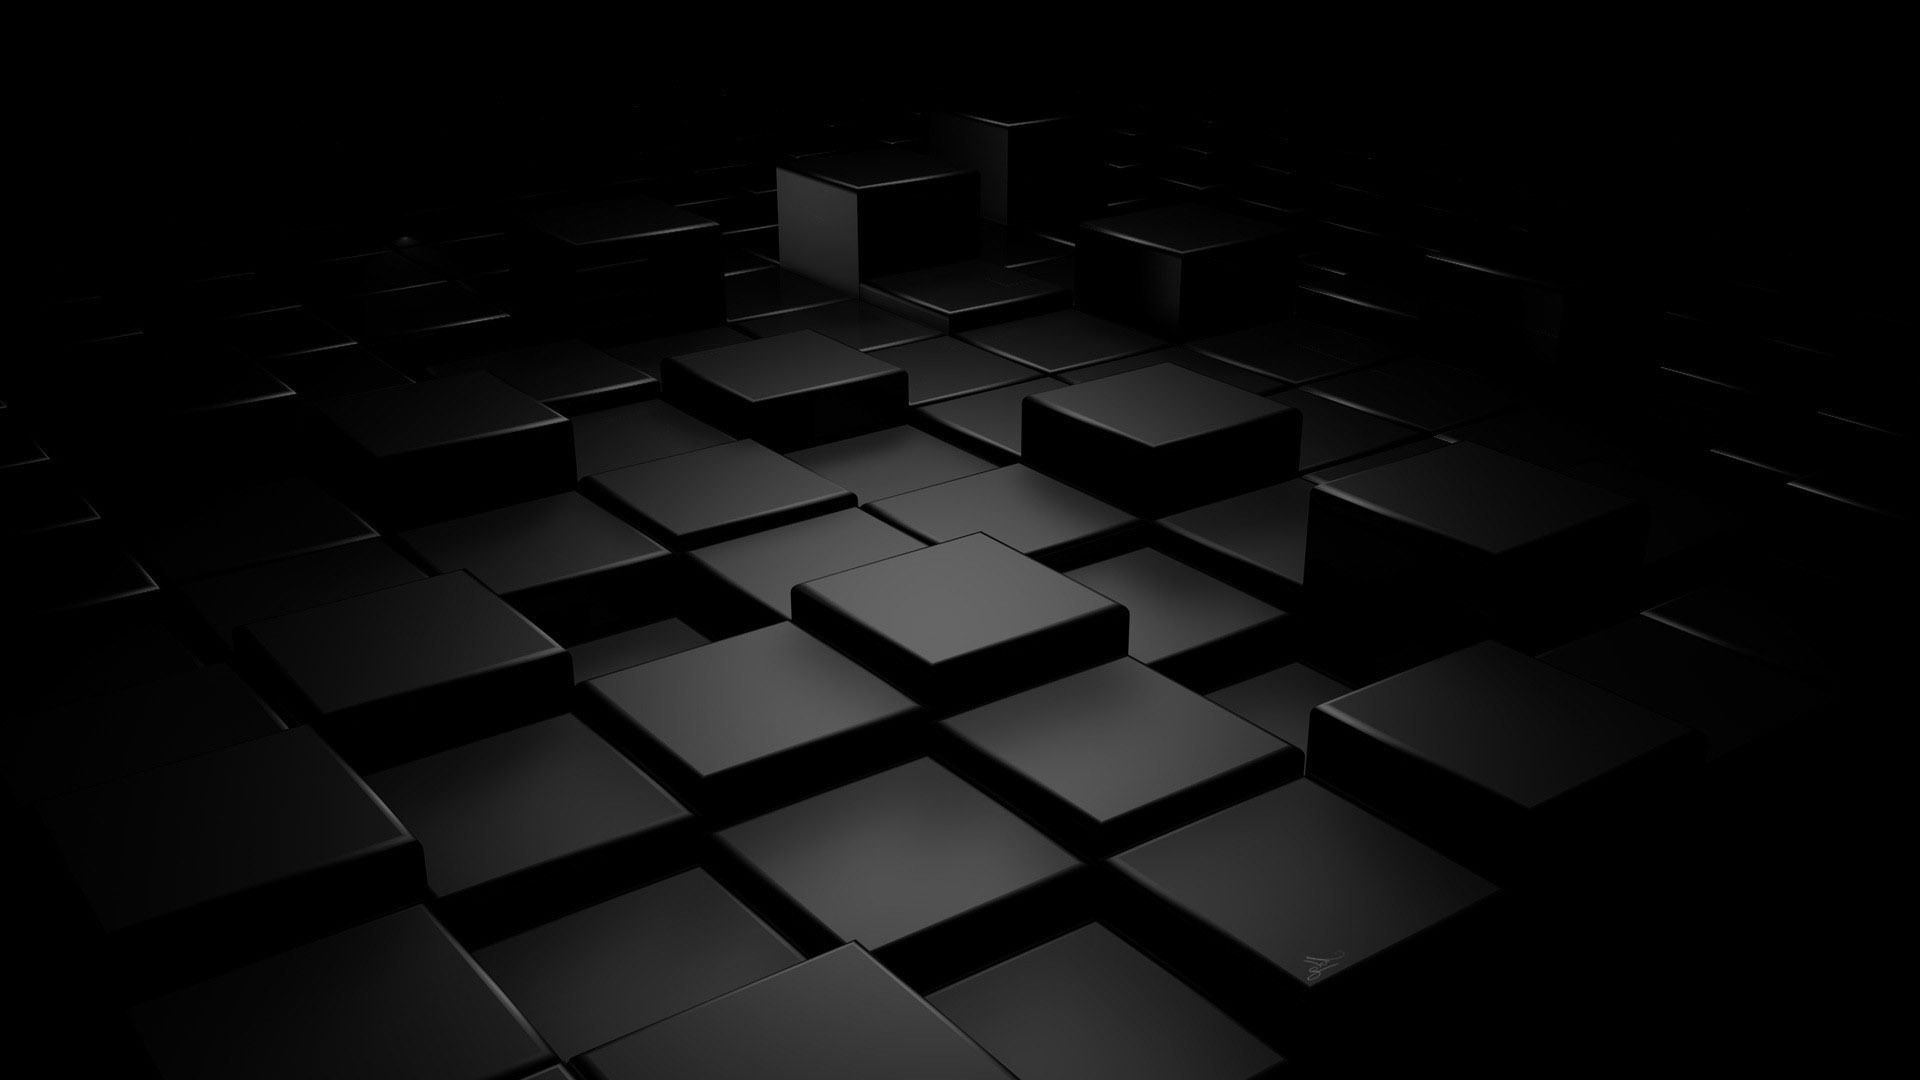 Black Abstract Design Hd Wallpapers Top Free Black Abstract Design Hd Backgrounds Wallpaperaccess